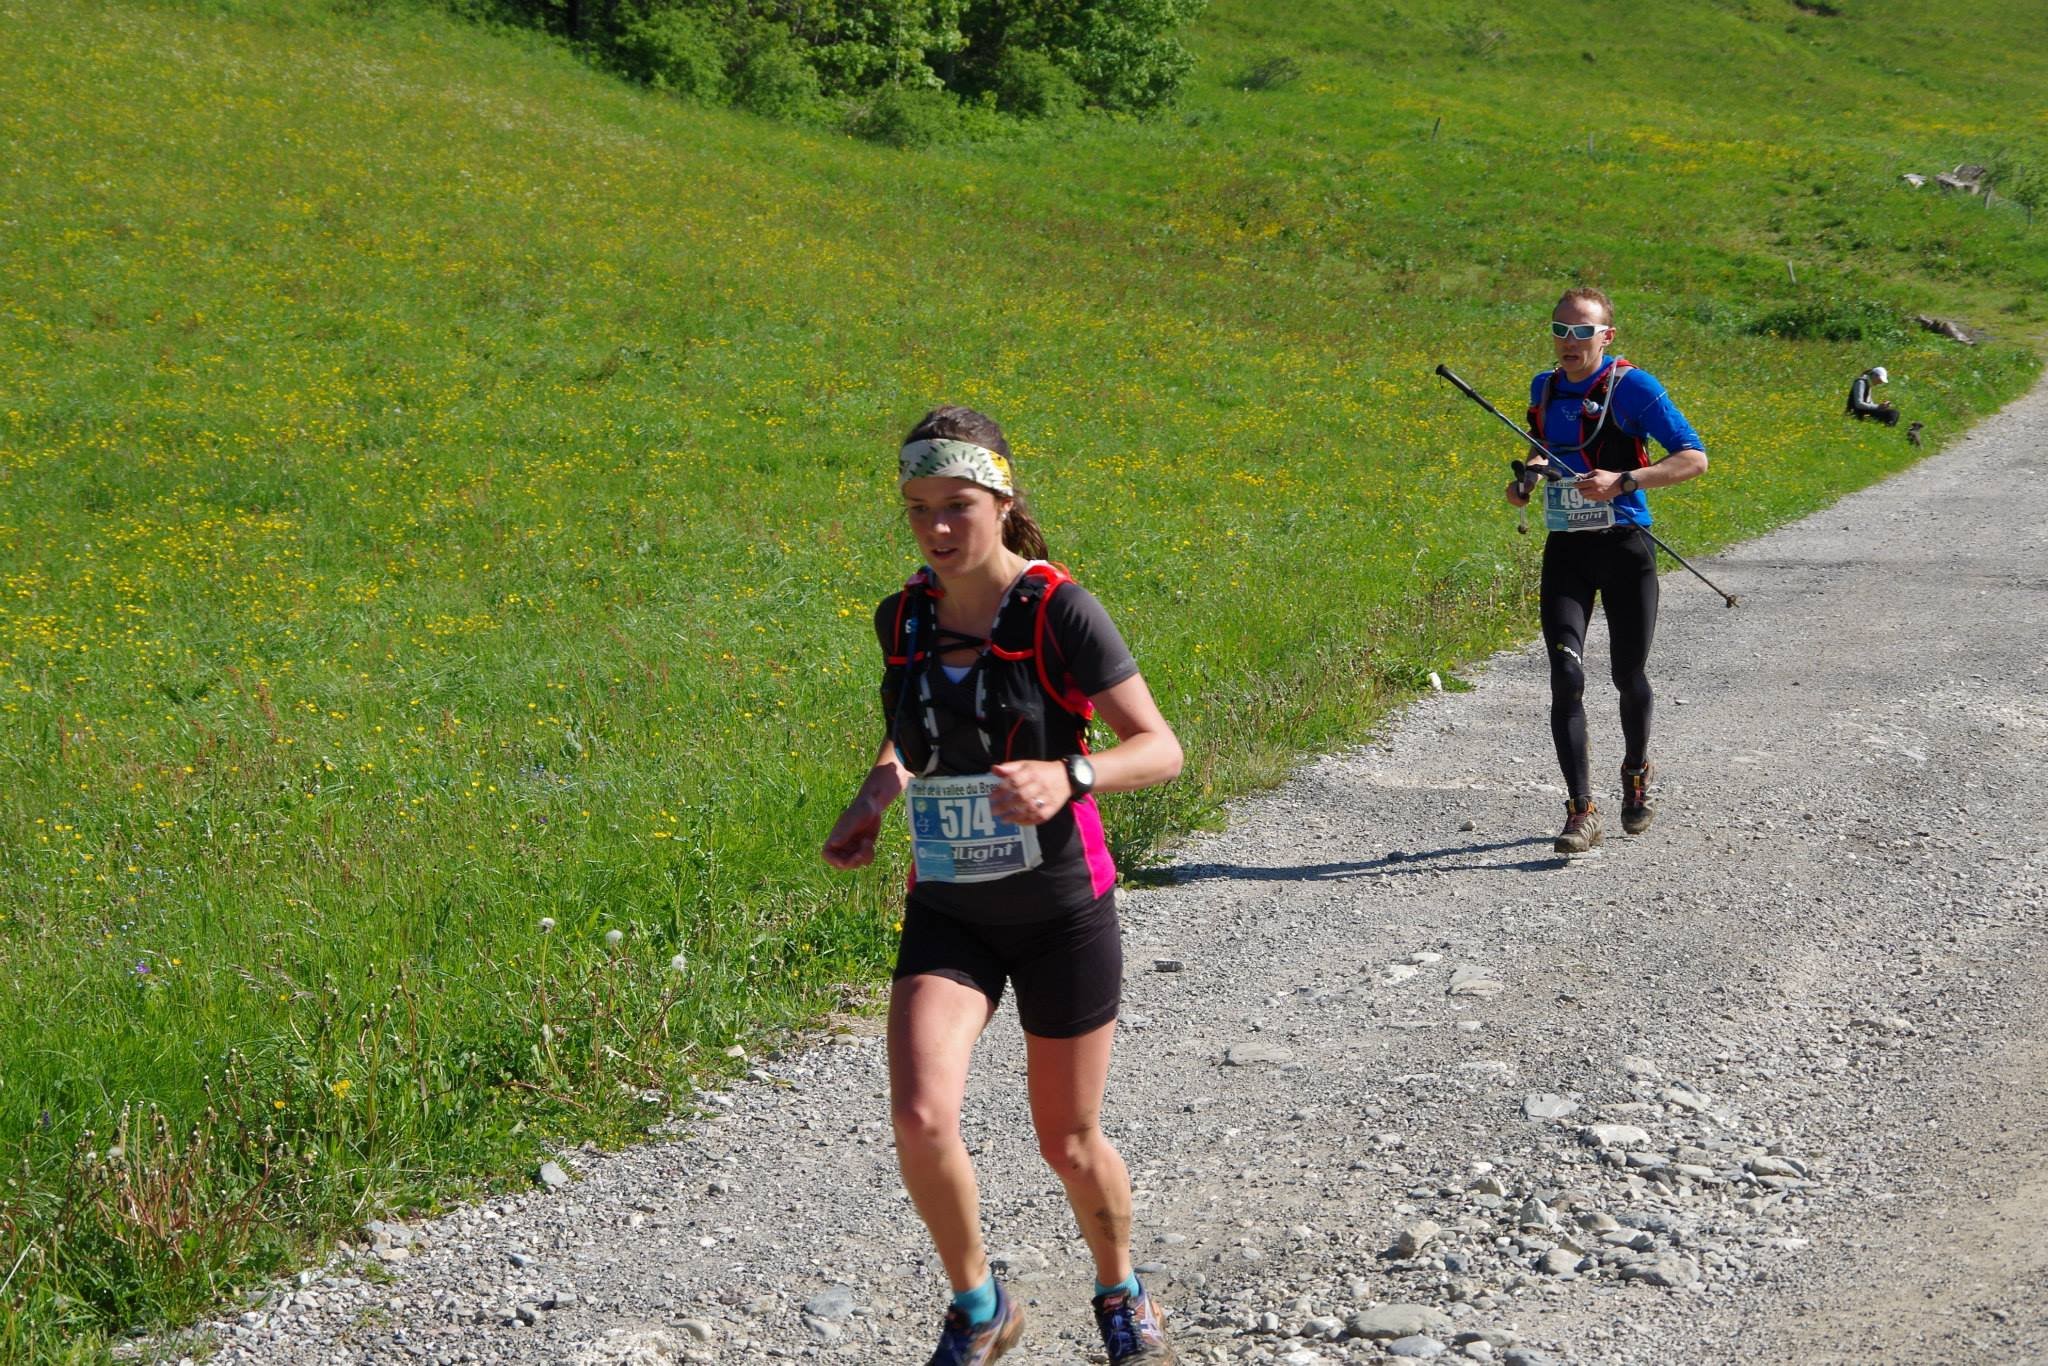 11216214 10153893231327782 1816836775701048359 o - RESULTATS, COMMENTAIRES, PHOTOS ET VIDEO DES TRAILS DE LA VALLEE DU BREVON / 24-05-15